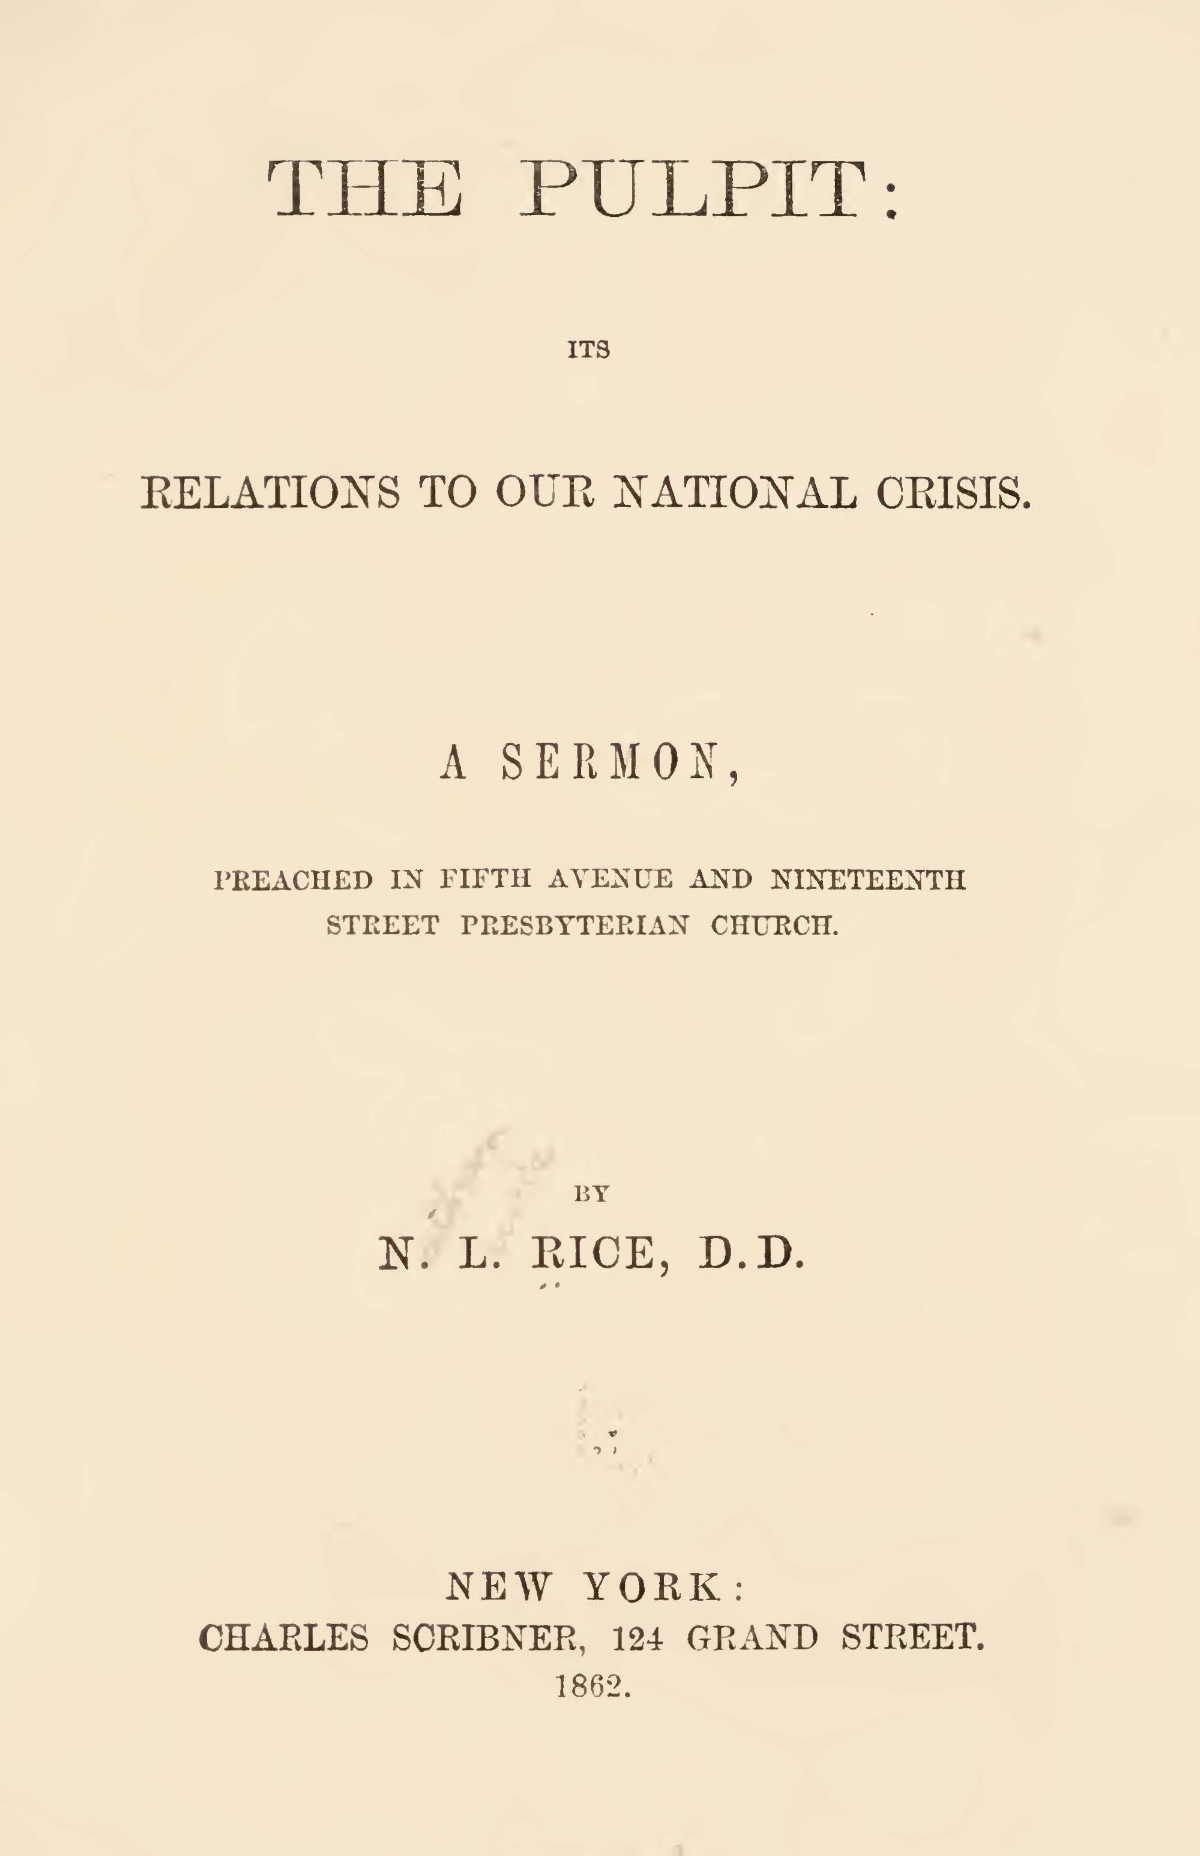 Rice, Nathan Lewis, The Pulpit Its Relations to Our National Crisis Title Page.jpg